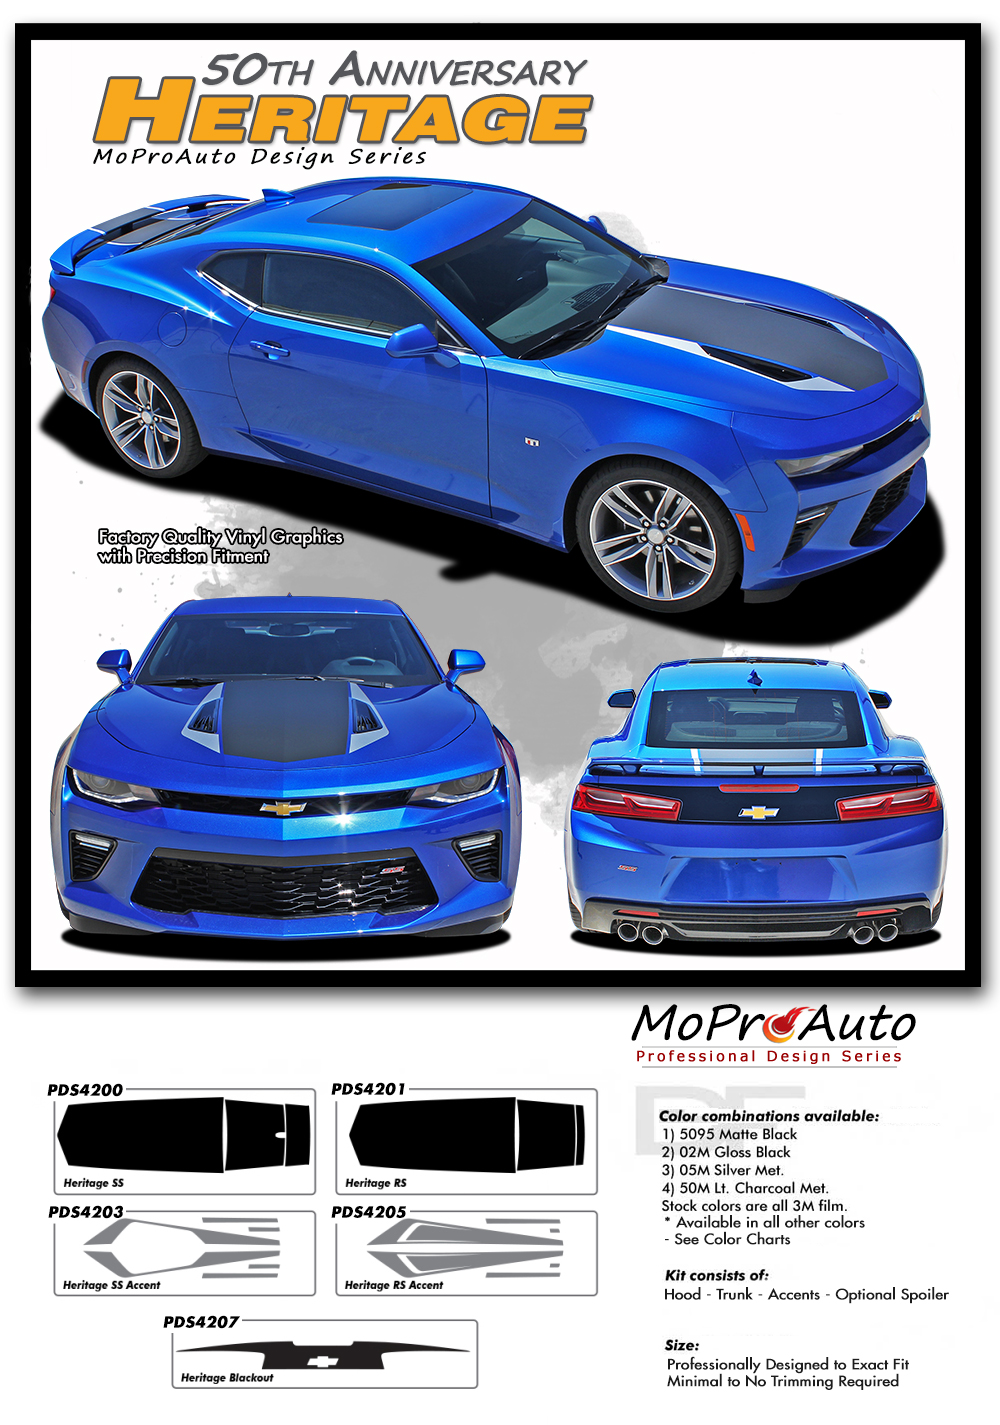 2016 2017 2018 Chevy SS RS Camaro HERITAGE 50th ANNIVERSARY INDY 500 Vinyl Graphics Kits, Decals, Stripes